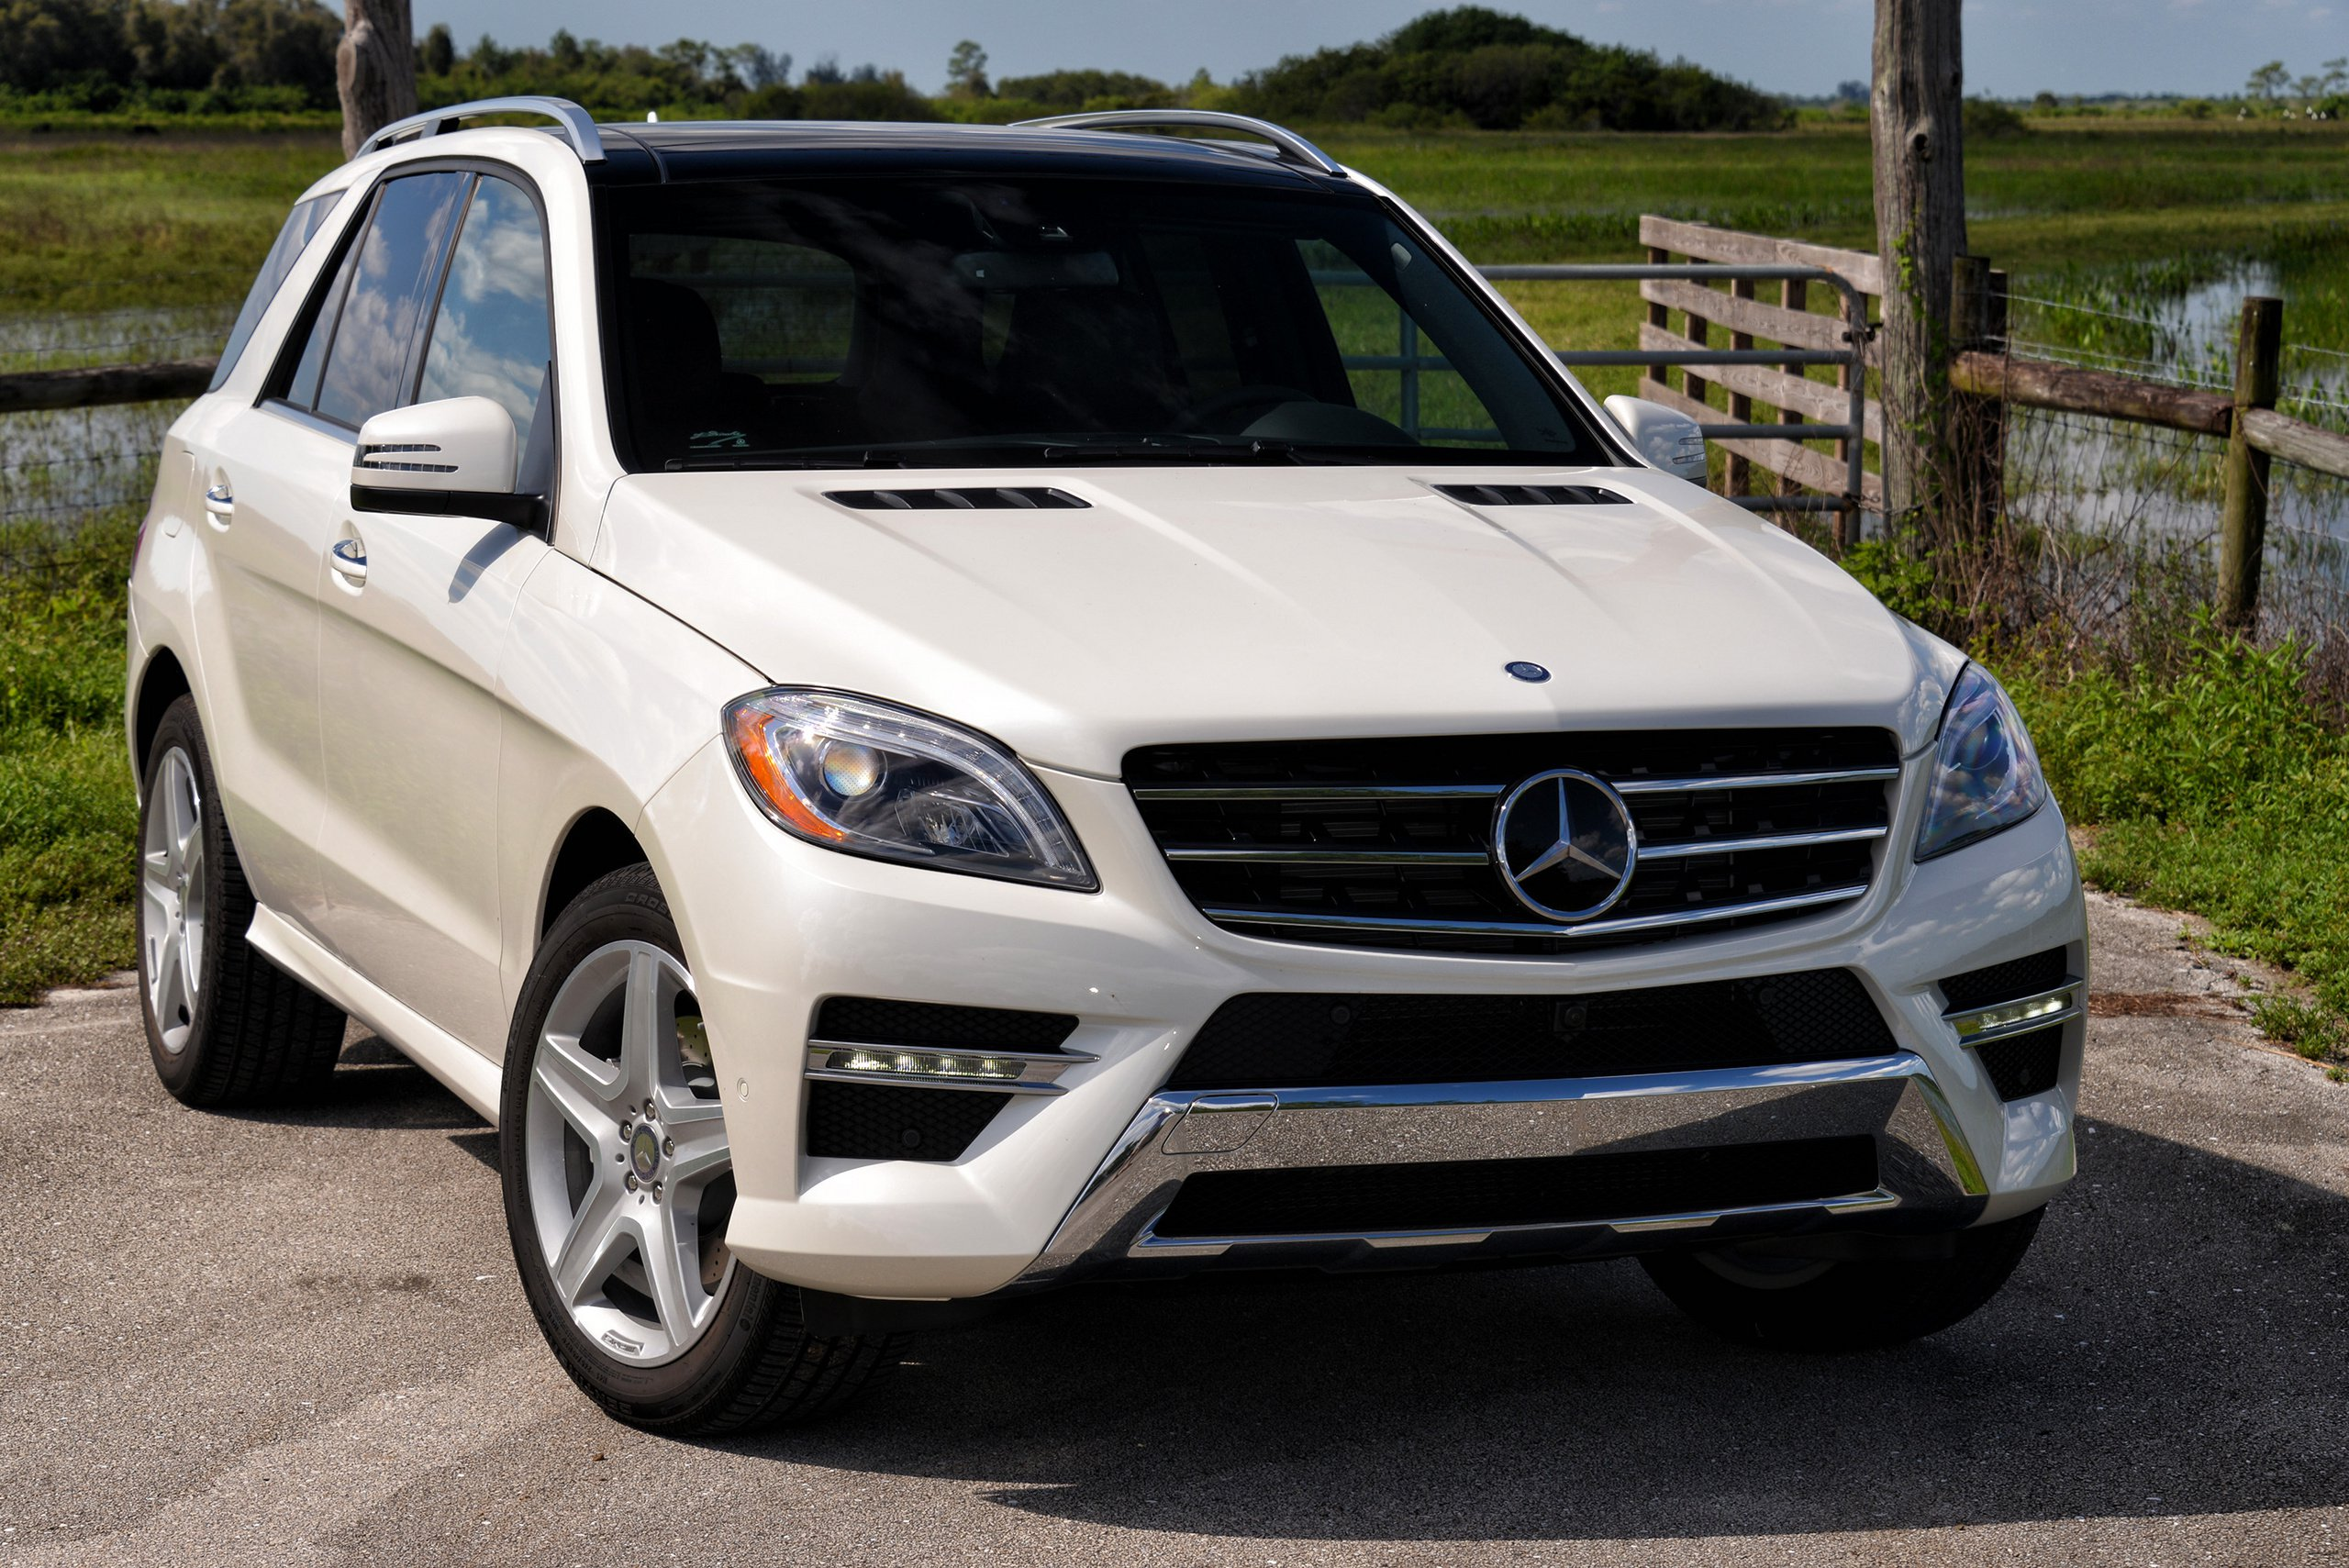 Mercedes ml 400 2015 2017 2018 best cars reviews for 2017 mercedes benz ml500 price